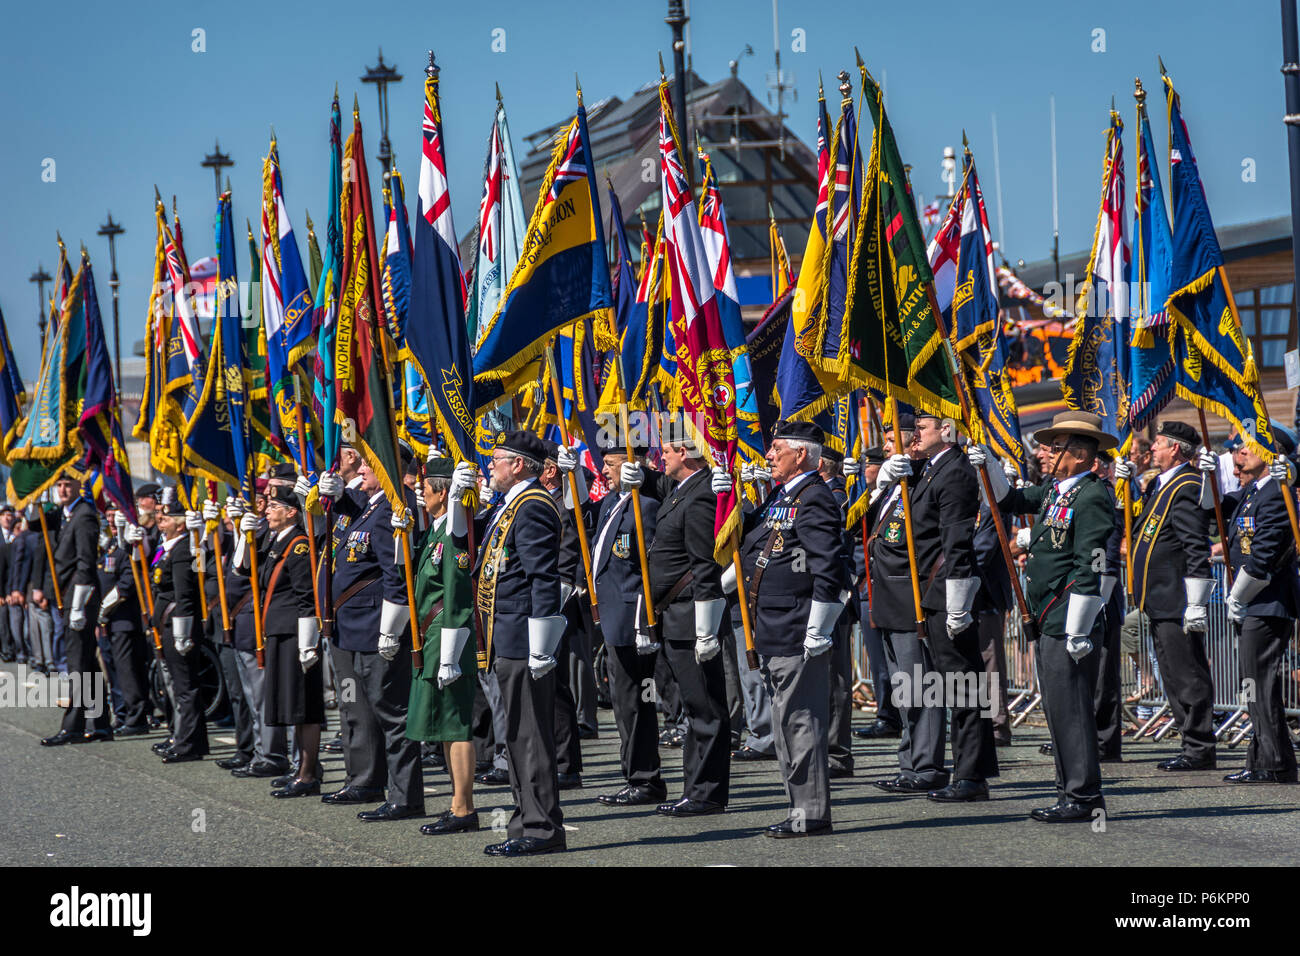 Armed Forces Day 2018 in Llandudno. UK Veterans holding flags on parade. 2018 on a very hot day. - Stock Image